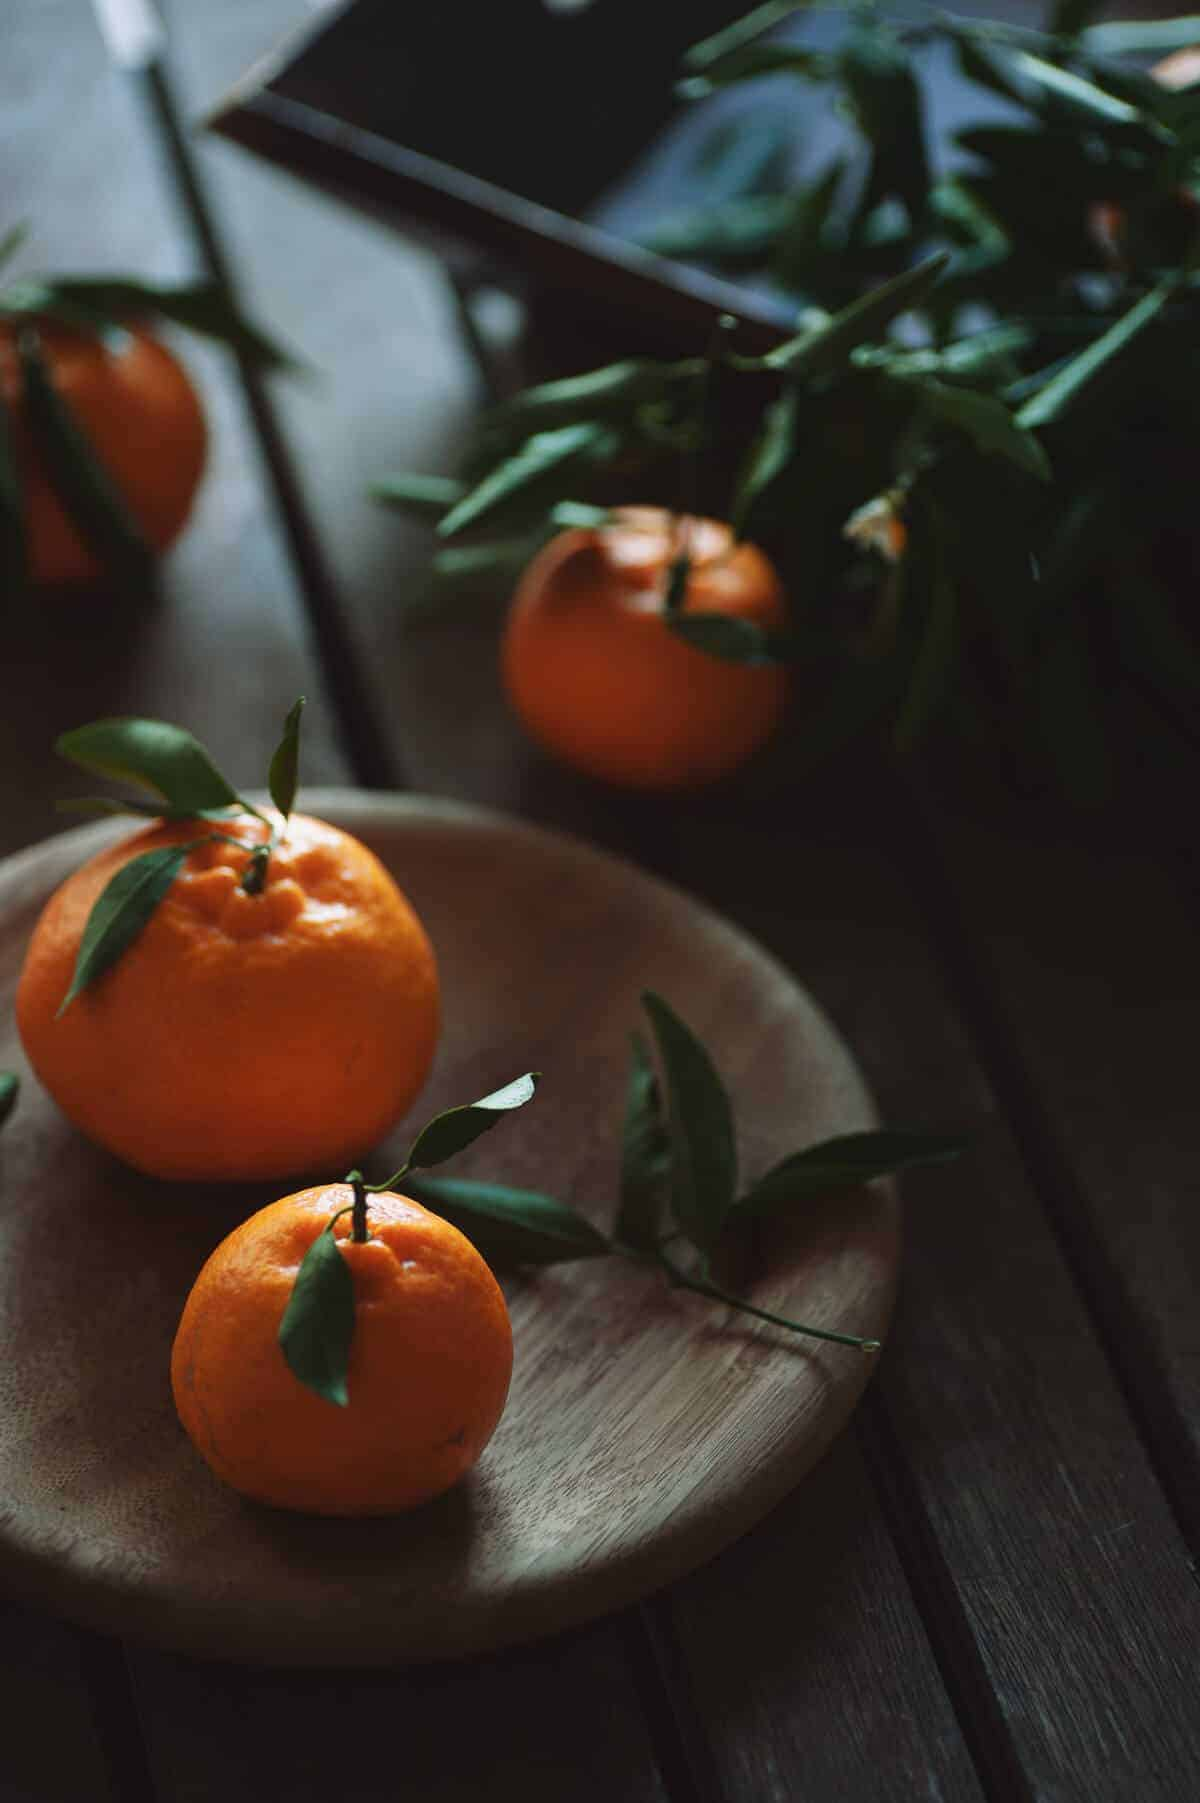 four mandarins on a wooden table